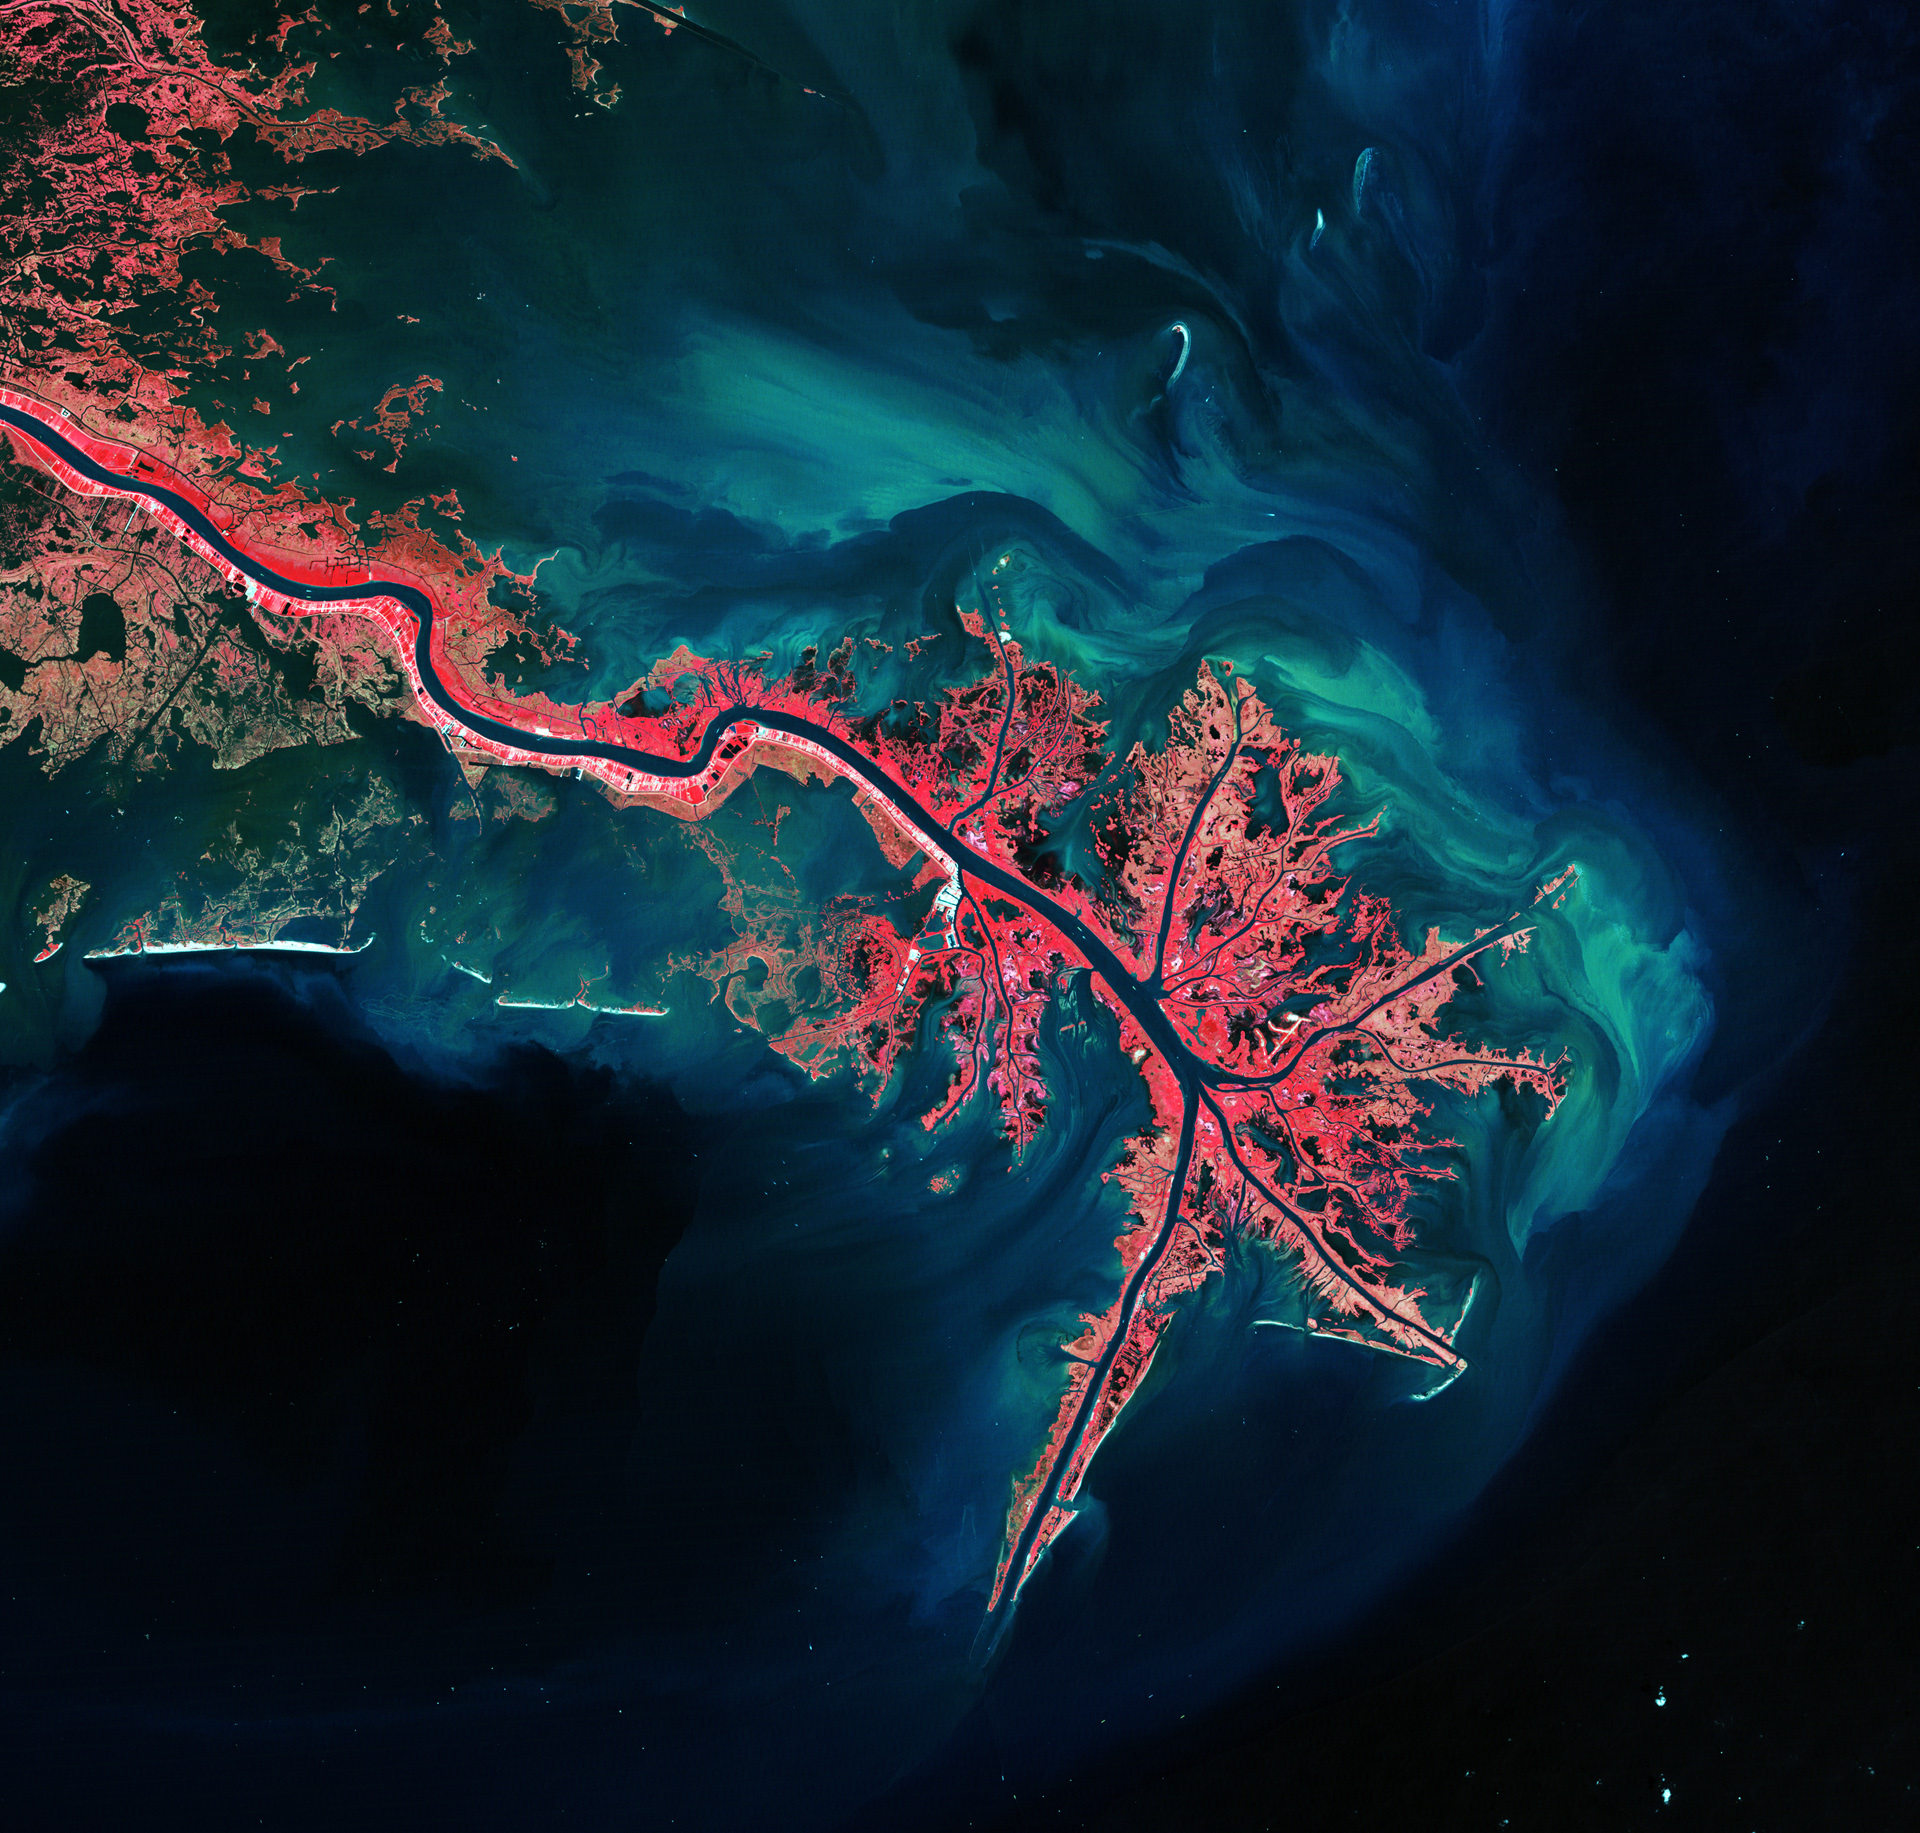 Space in Images - 2012 - 05 - Mississippi ...